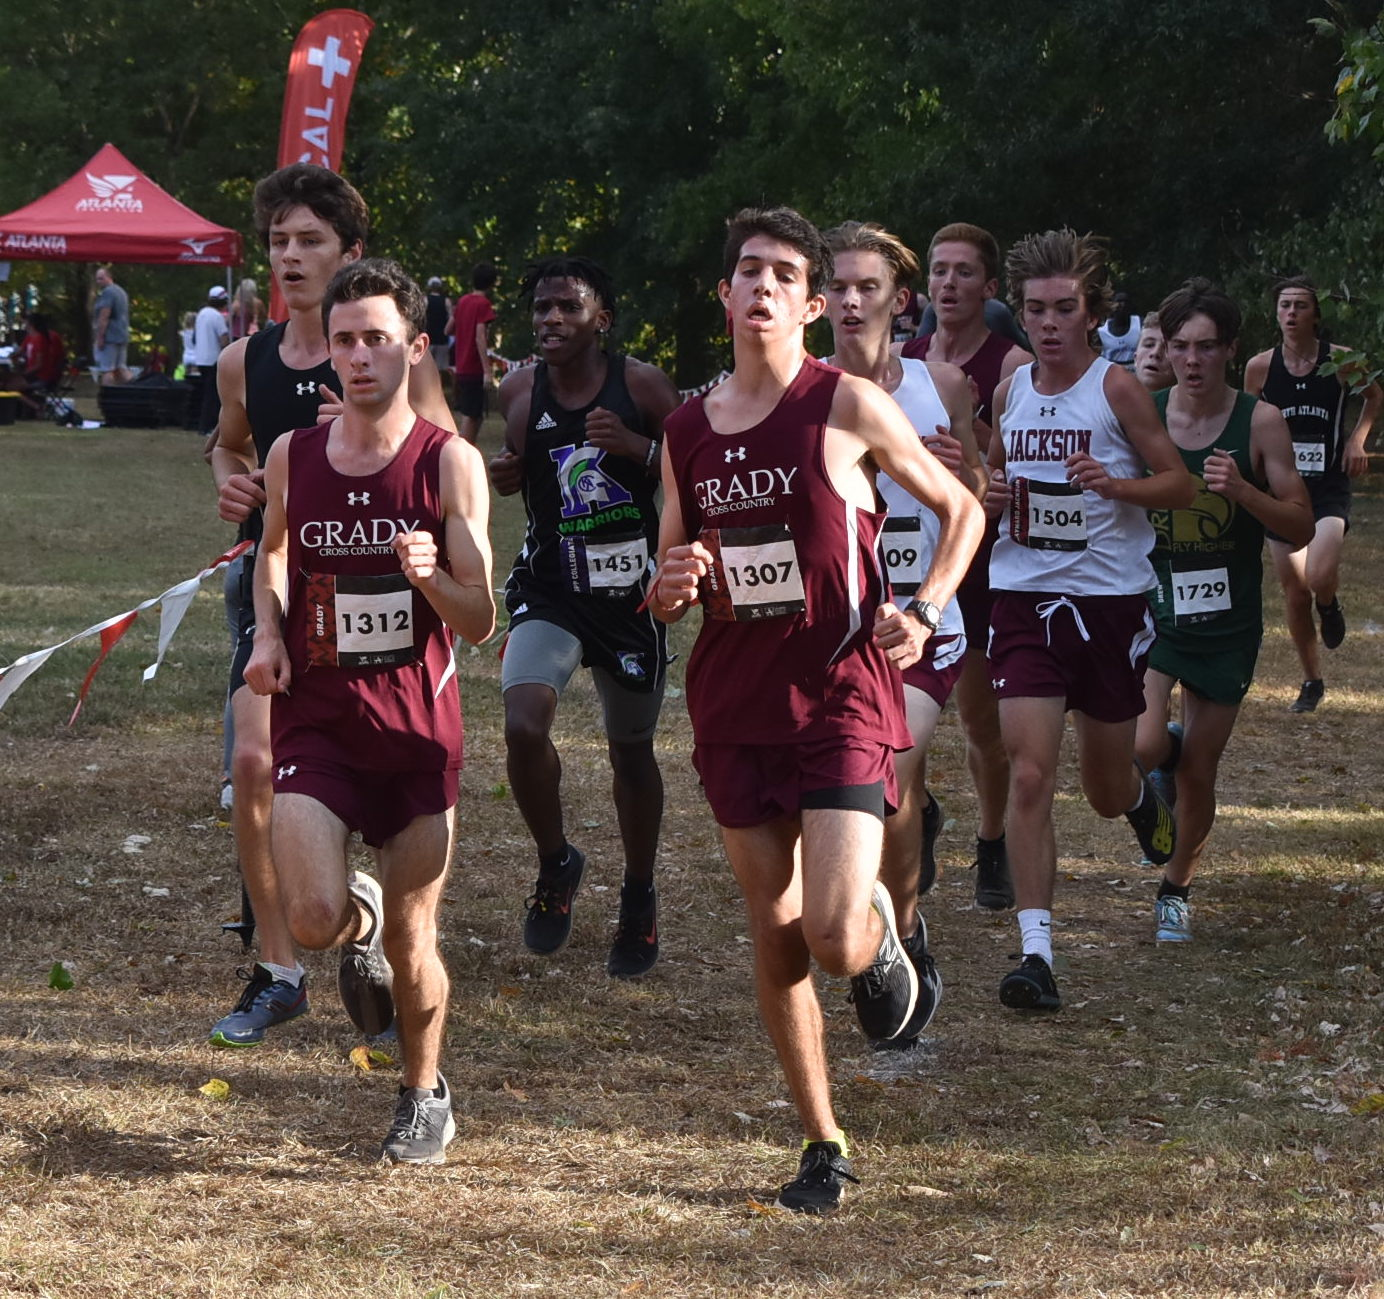 FINISH STRONG: Senior Bram Mansbach (left) and senior Kavi Jakes (right)  lead the pack at the APS City Championships on Oct. 8.  Mansbach went on to finish first place and Jakes went on to finish second overall. The Knights' placed first overall in the meet.